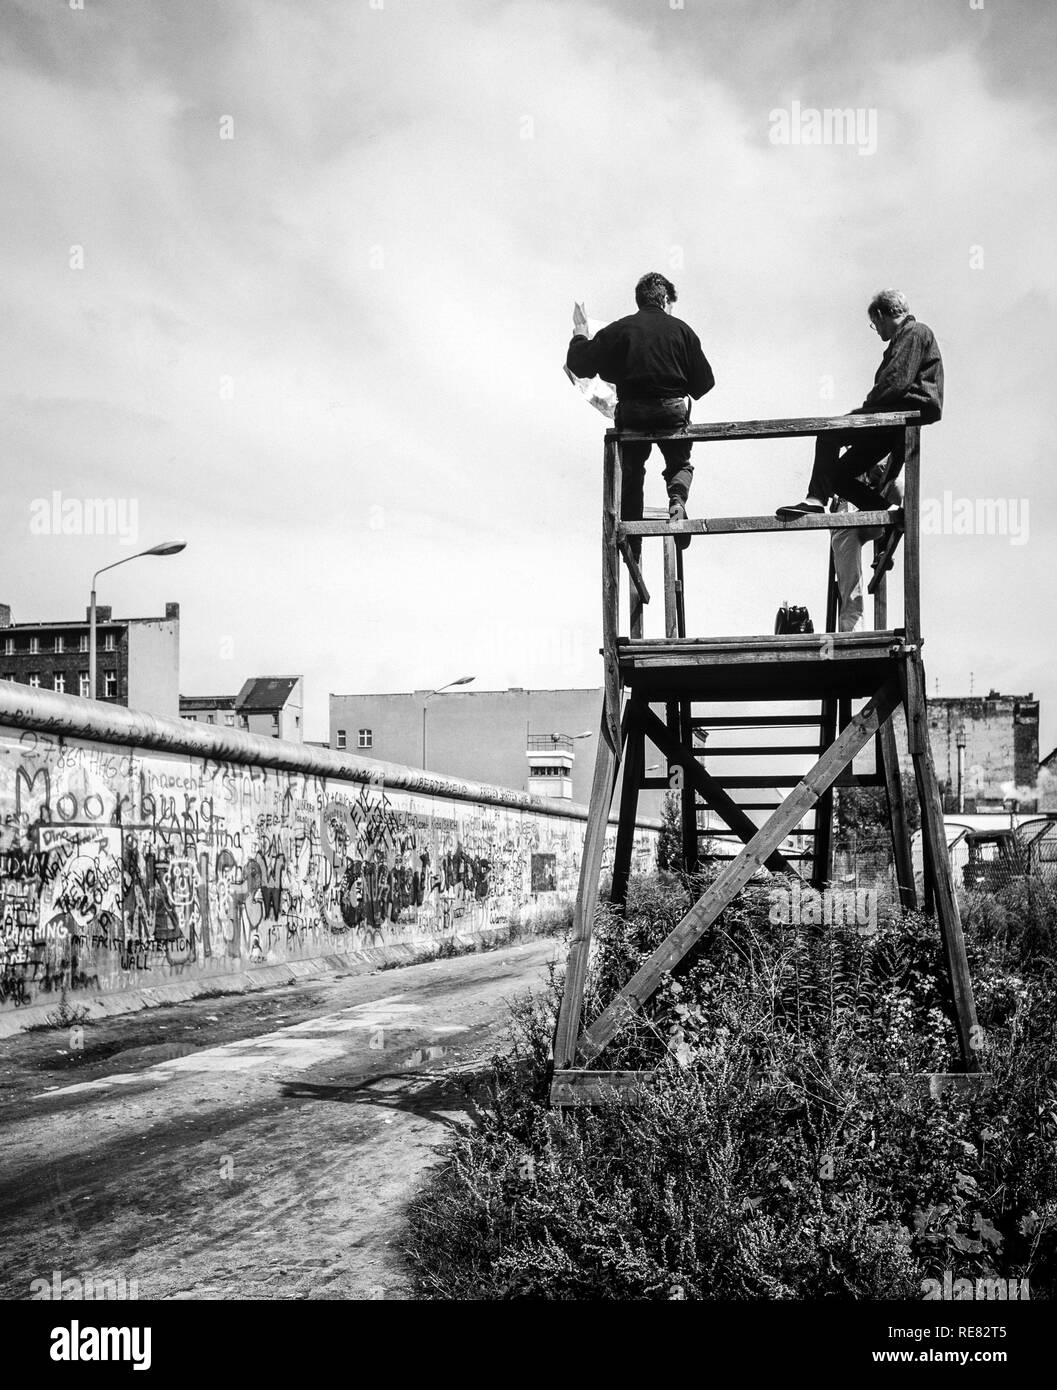 August 1986, Berlin Wall graffitis, people on observation platform looking over the Wall, Zimmerstrasse street, West Berlin side, Germany, Europe, - Stock Image